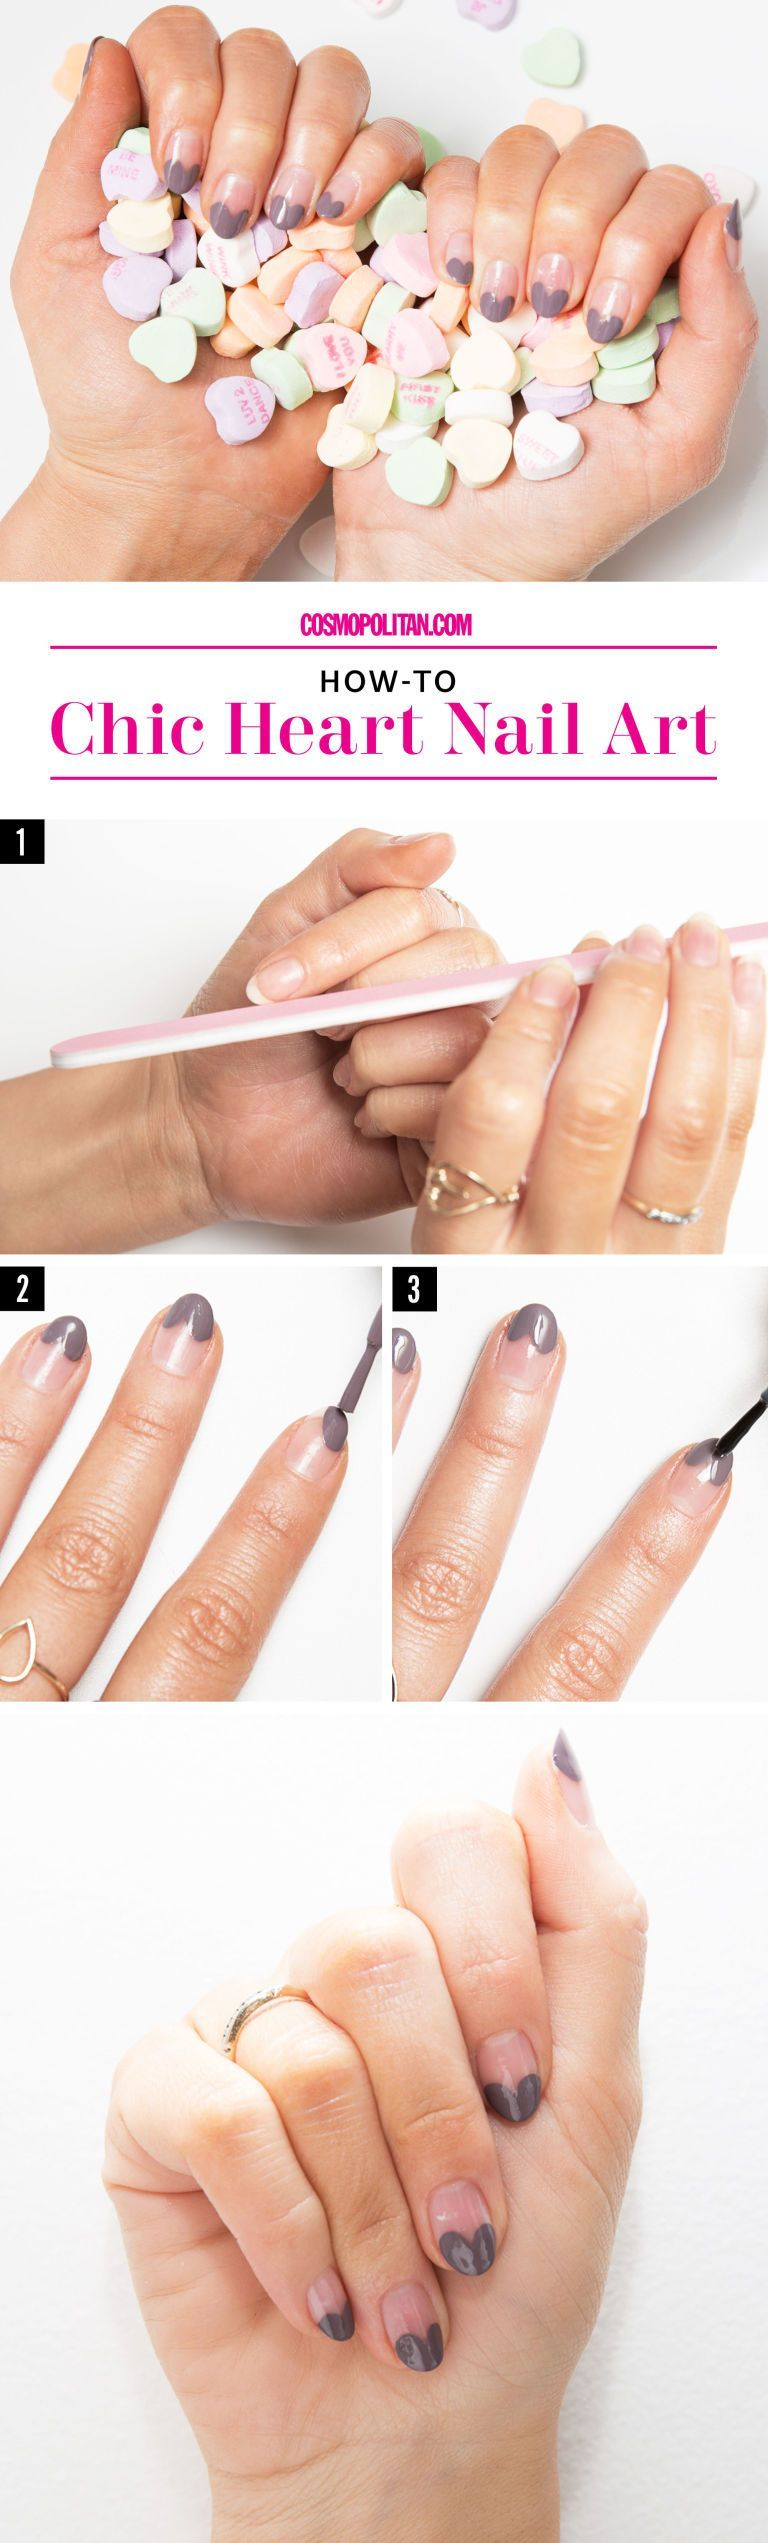 Valentine's Day Nail Art Looks VALENTINE'S DAY NAIL ART: Valentine's Day nails can be cheesy, but these designs from Simcha Whitehill aka Miss Pop are anything but — these are gorgeous and chic nail designs. Click through for this easy DIY nail art tutorial and instructions, plus you'll find 4 more gorgeous nail art tutorials and m